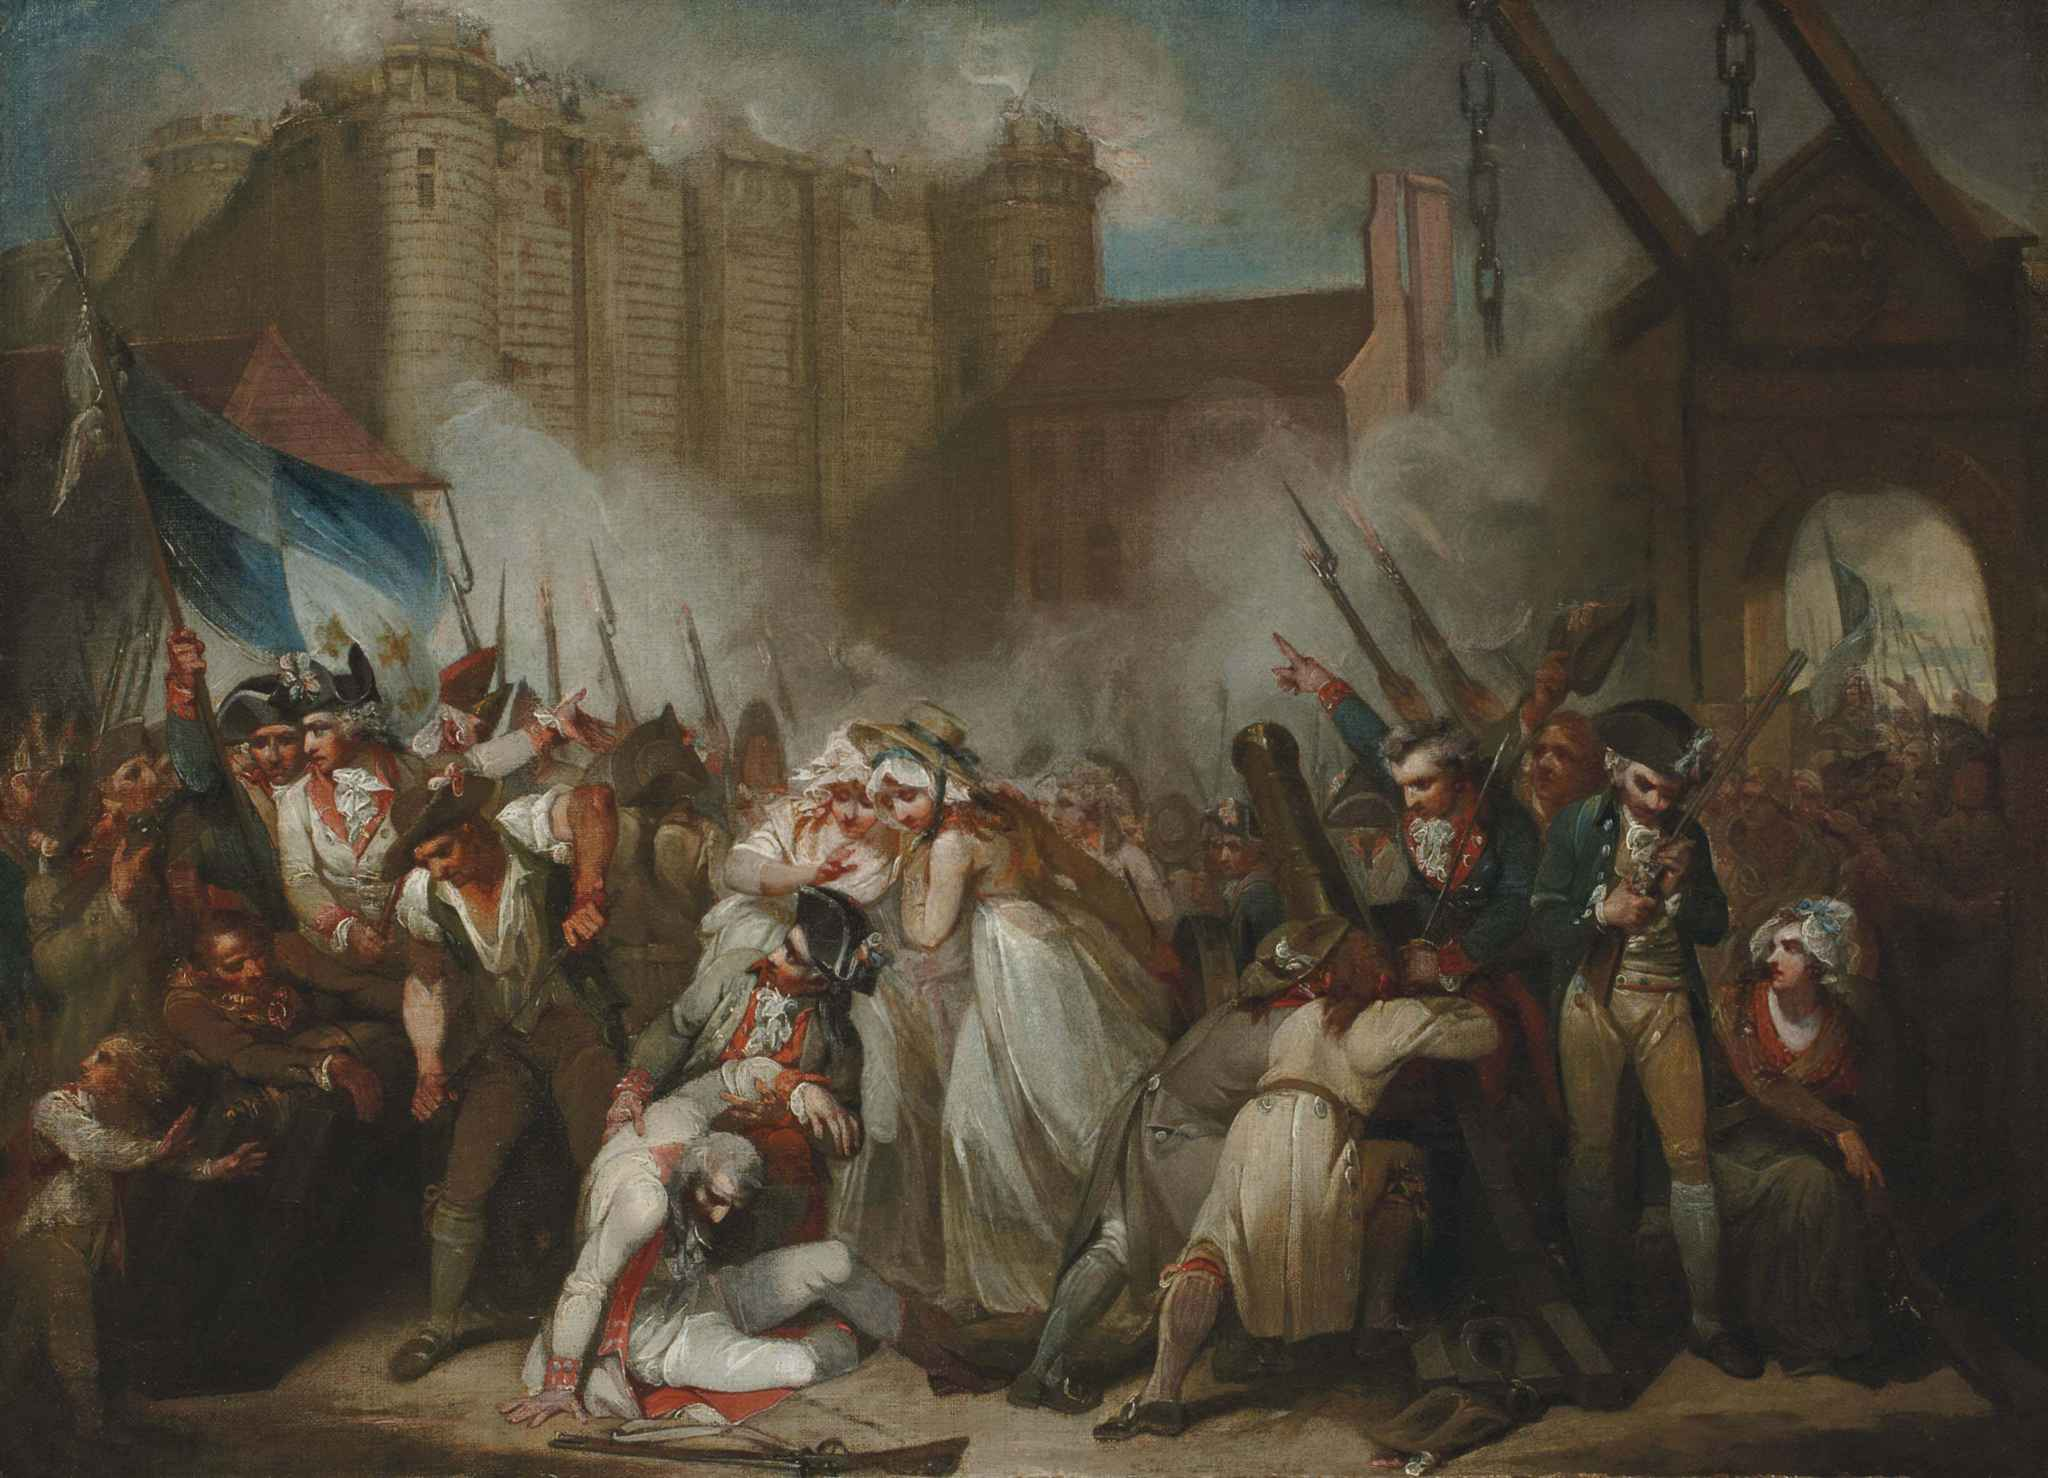 an overview of the french revolutionary committee of public safety in 18th century Home » browse » history » european history » france » 17th and 18th century france of the french revolution to the committee of public safety.